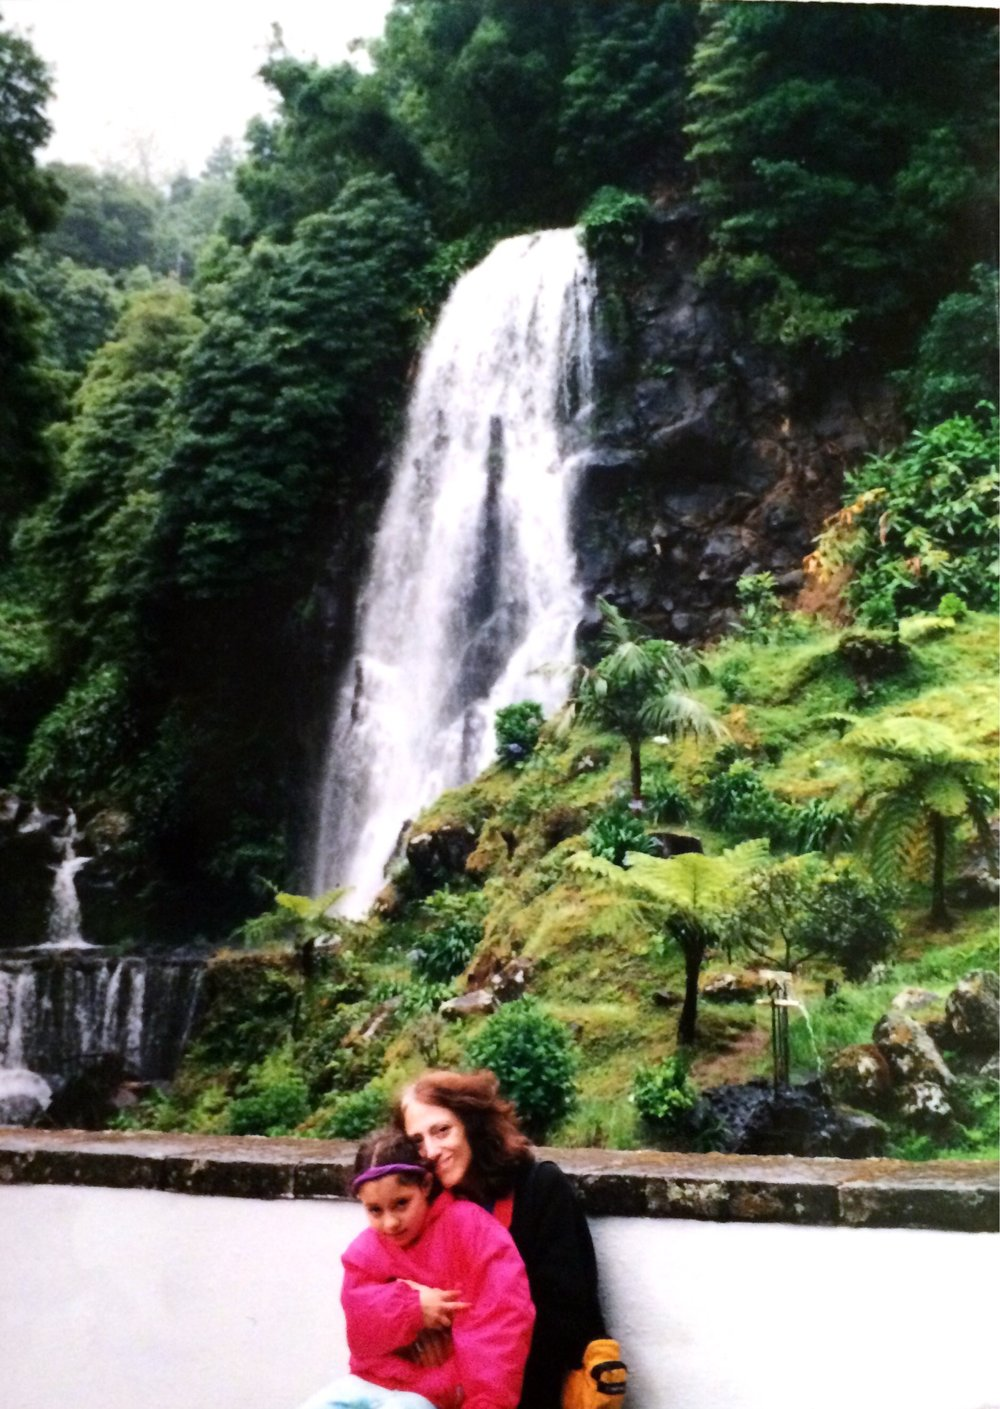 Alma and me at a waterfall in Azores, Summer 2002.